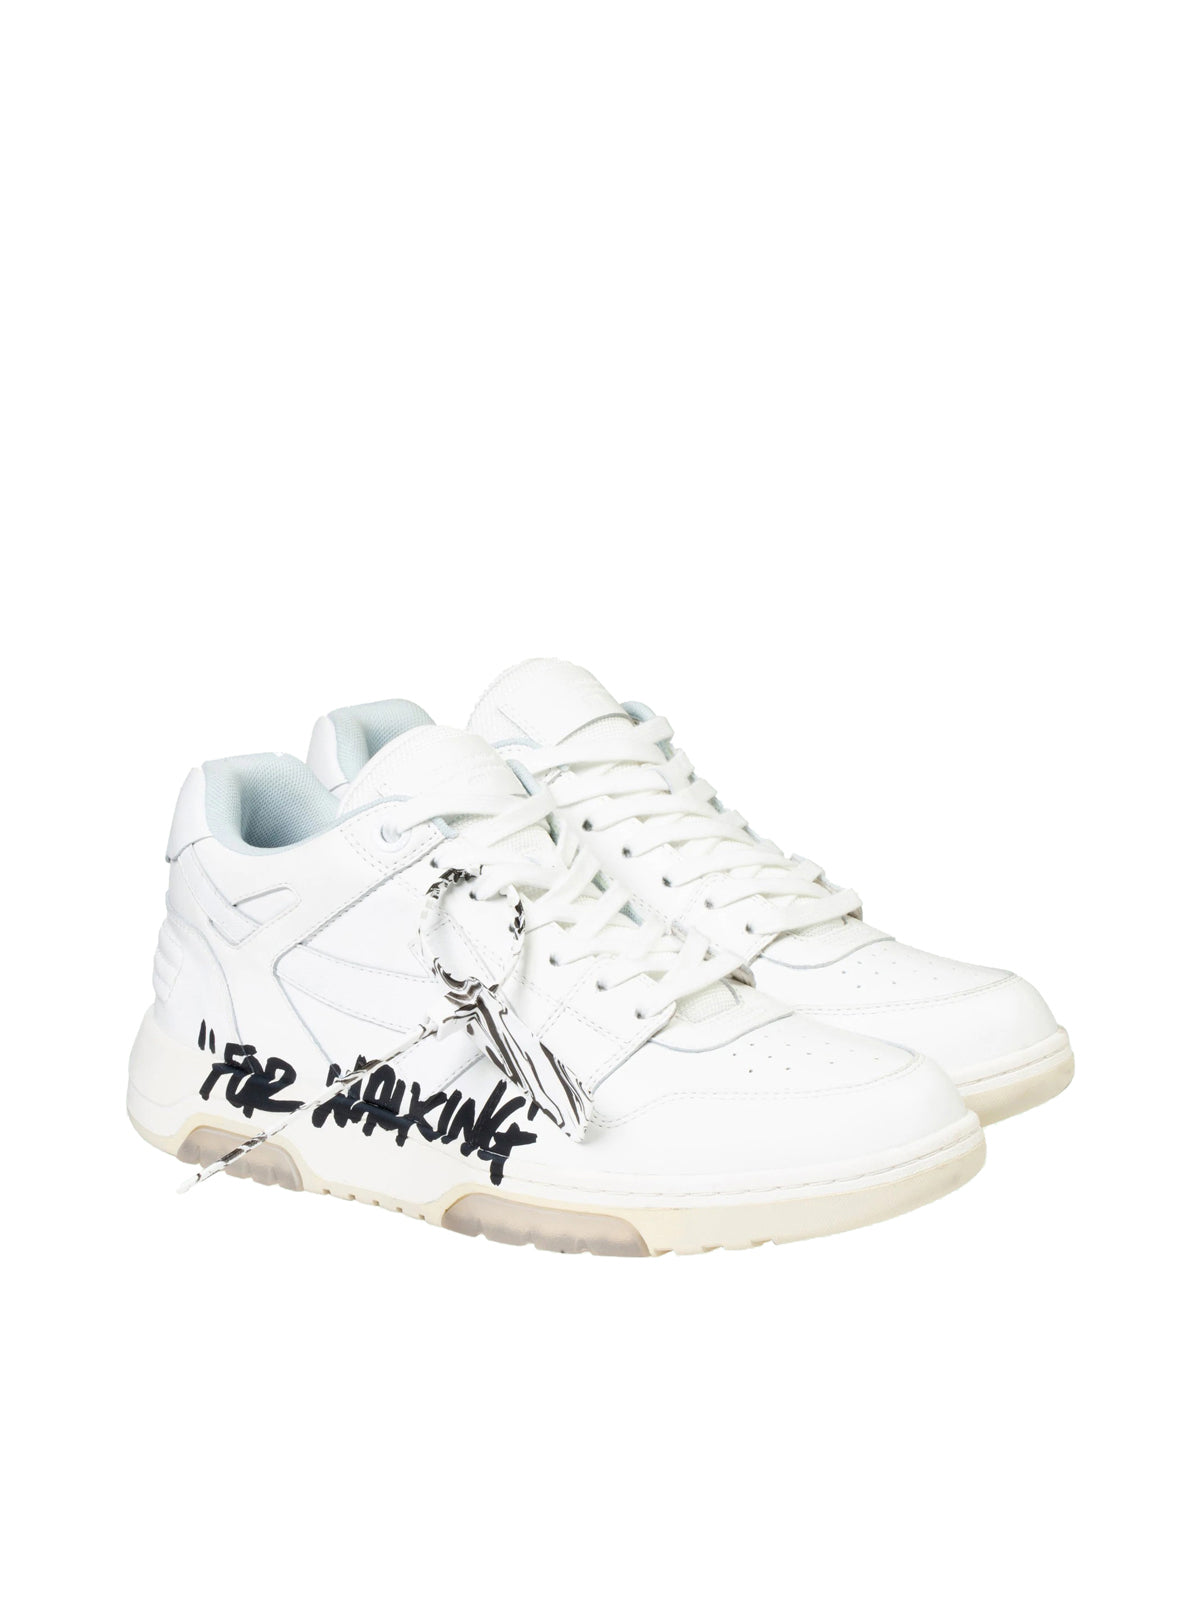 "OUT OF OFFICE ""OOO"" SNEAKERS"